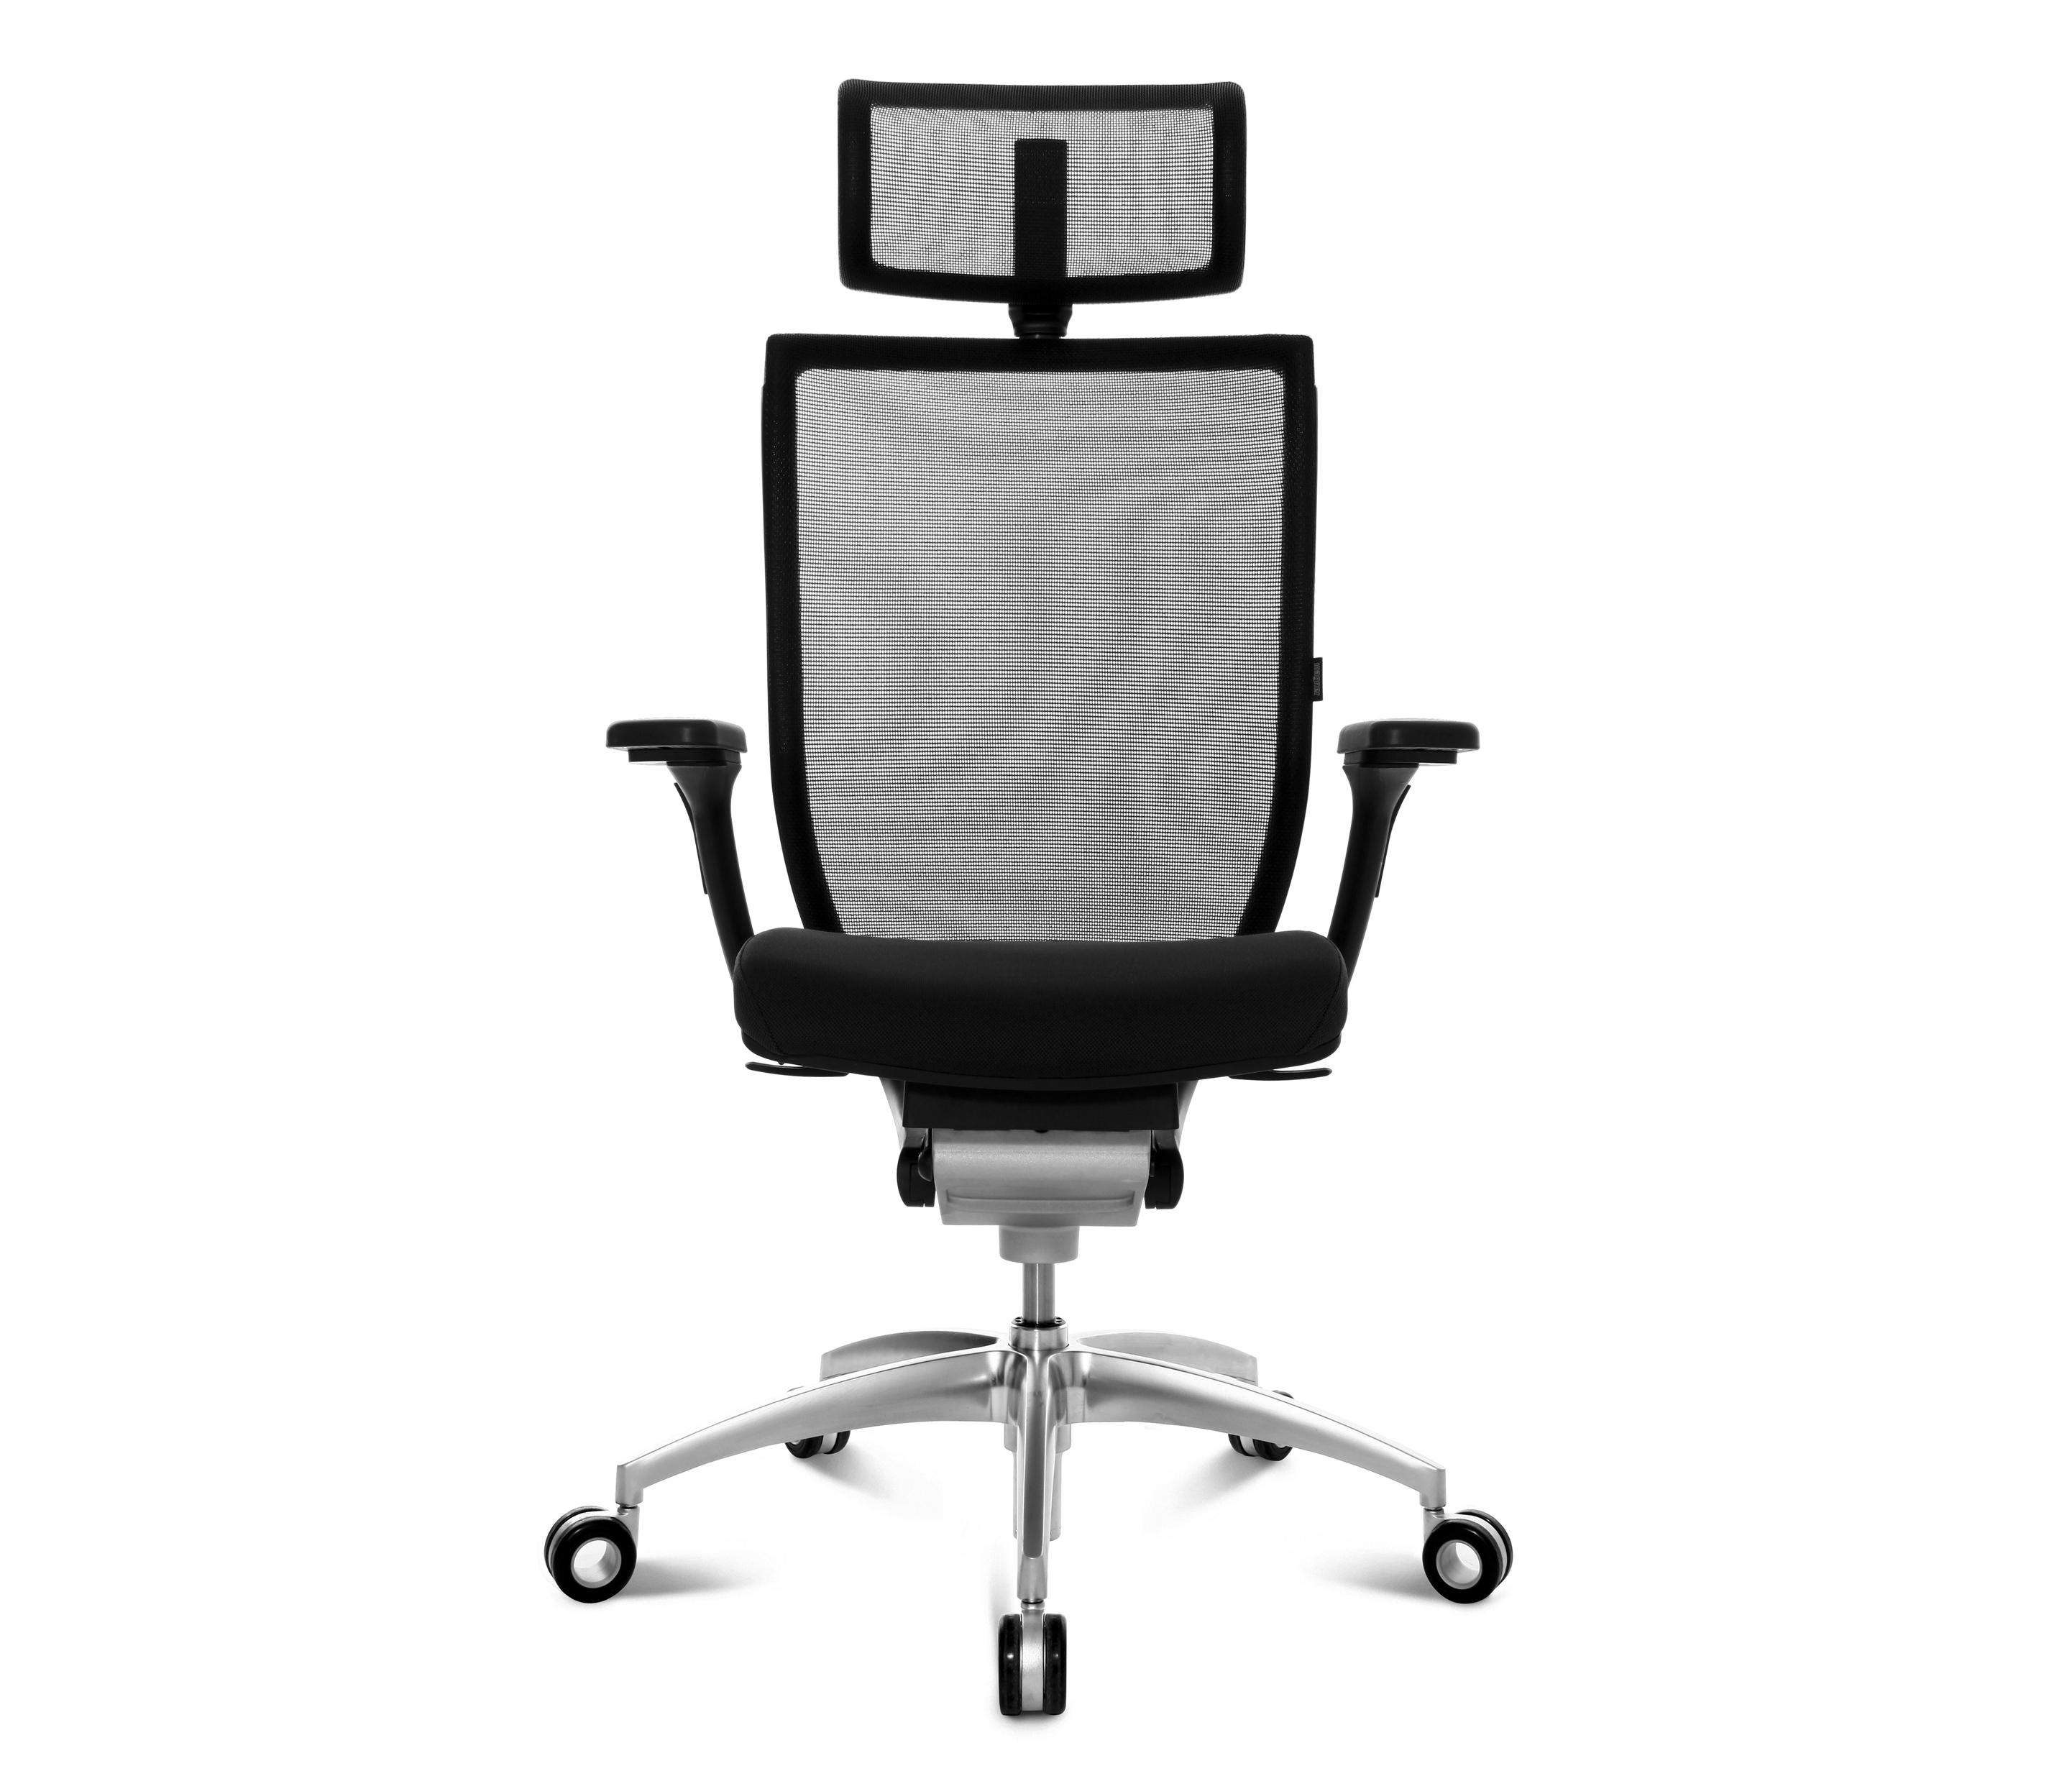 TITAN 10 - Management chairs from Wagner | Architonic